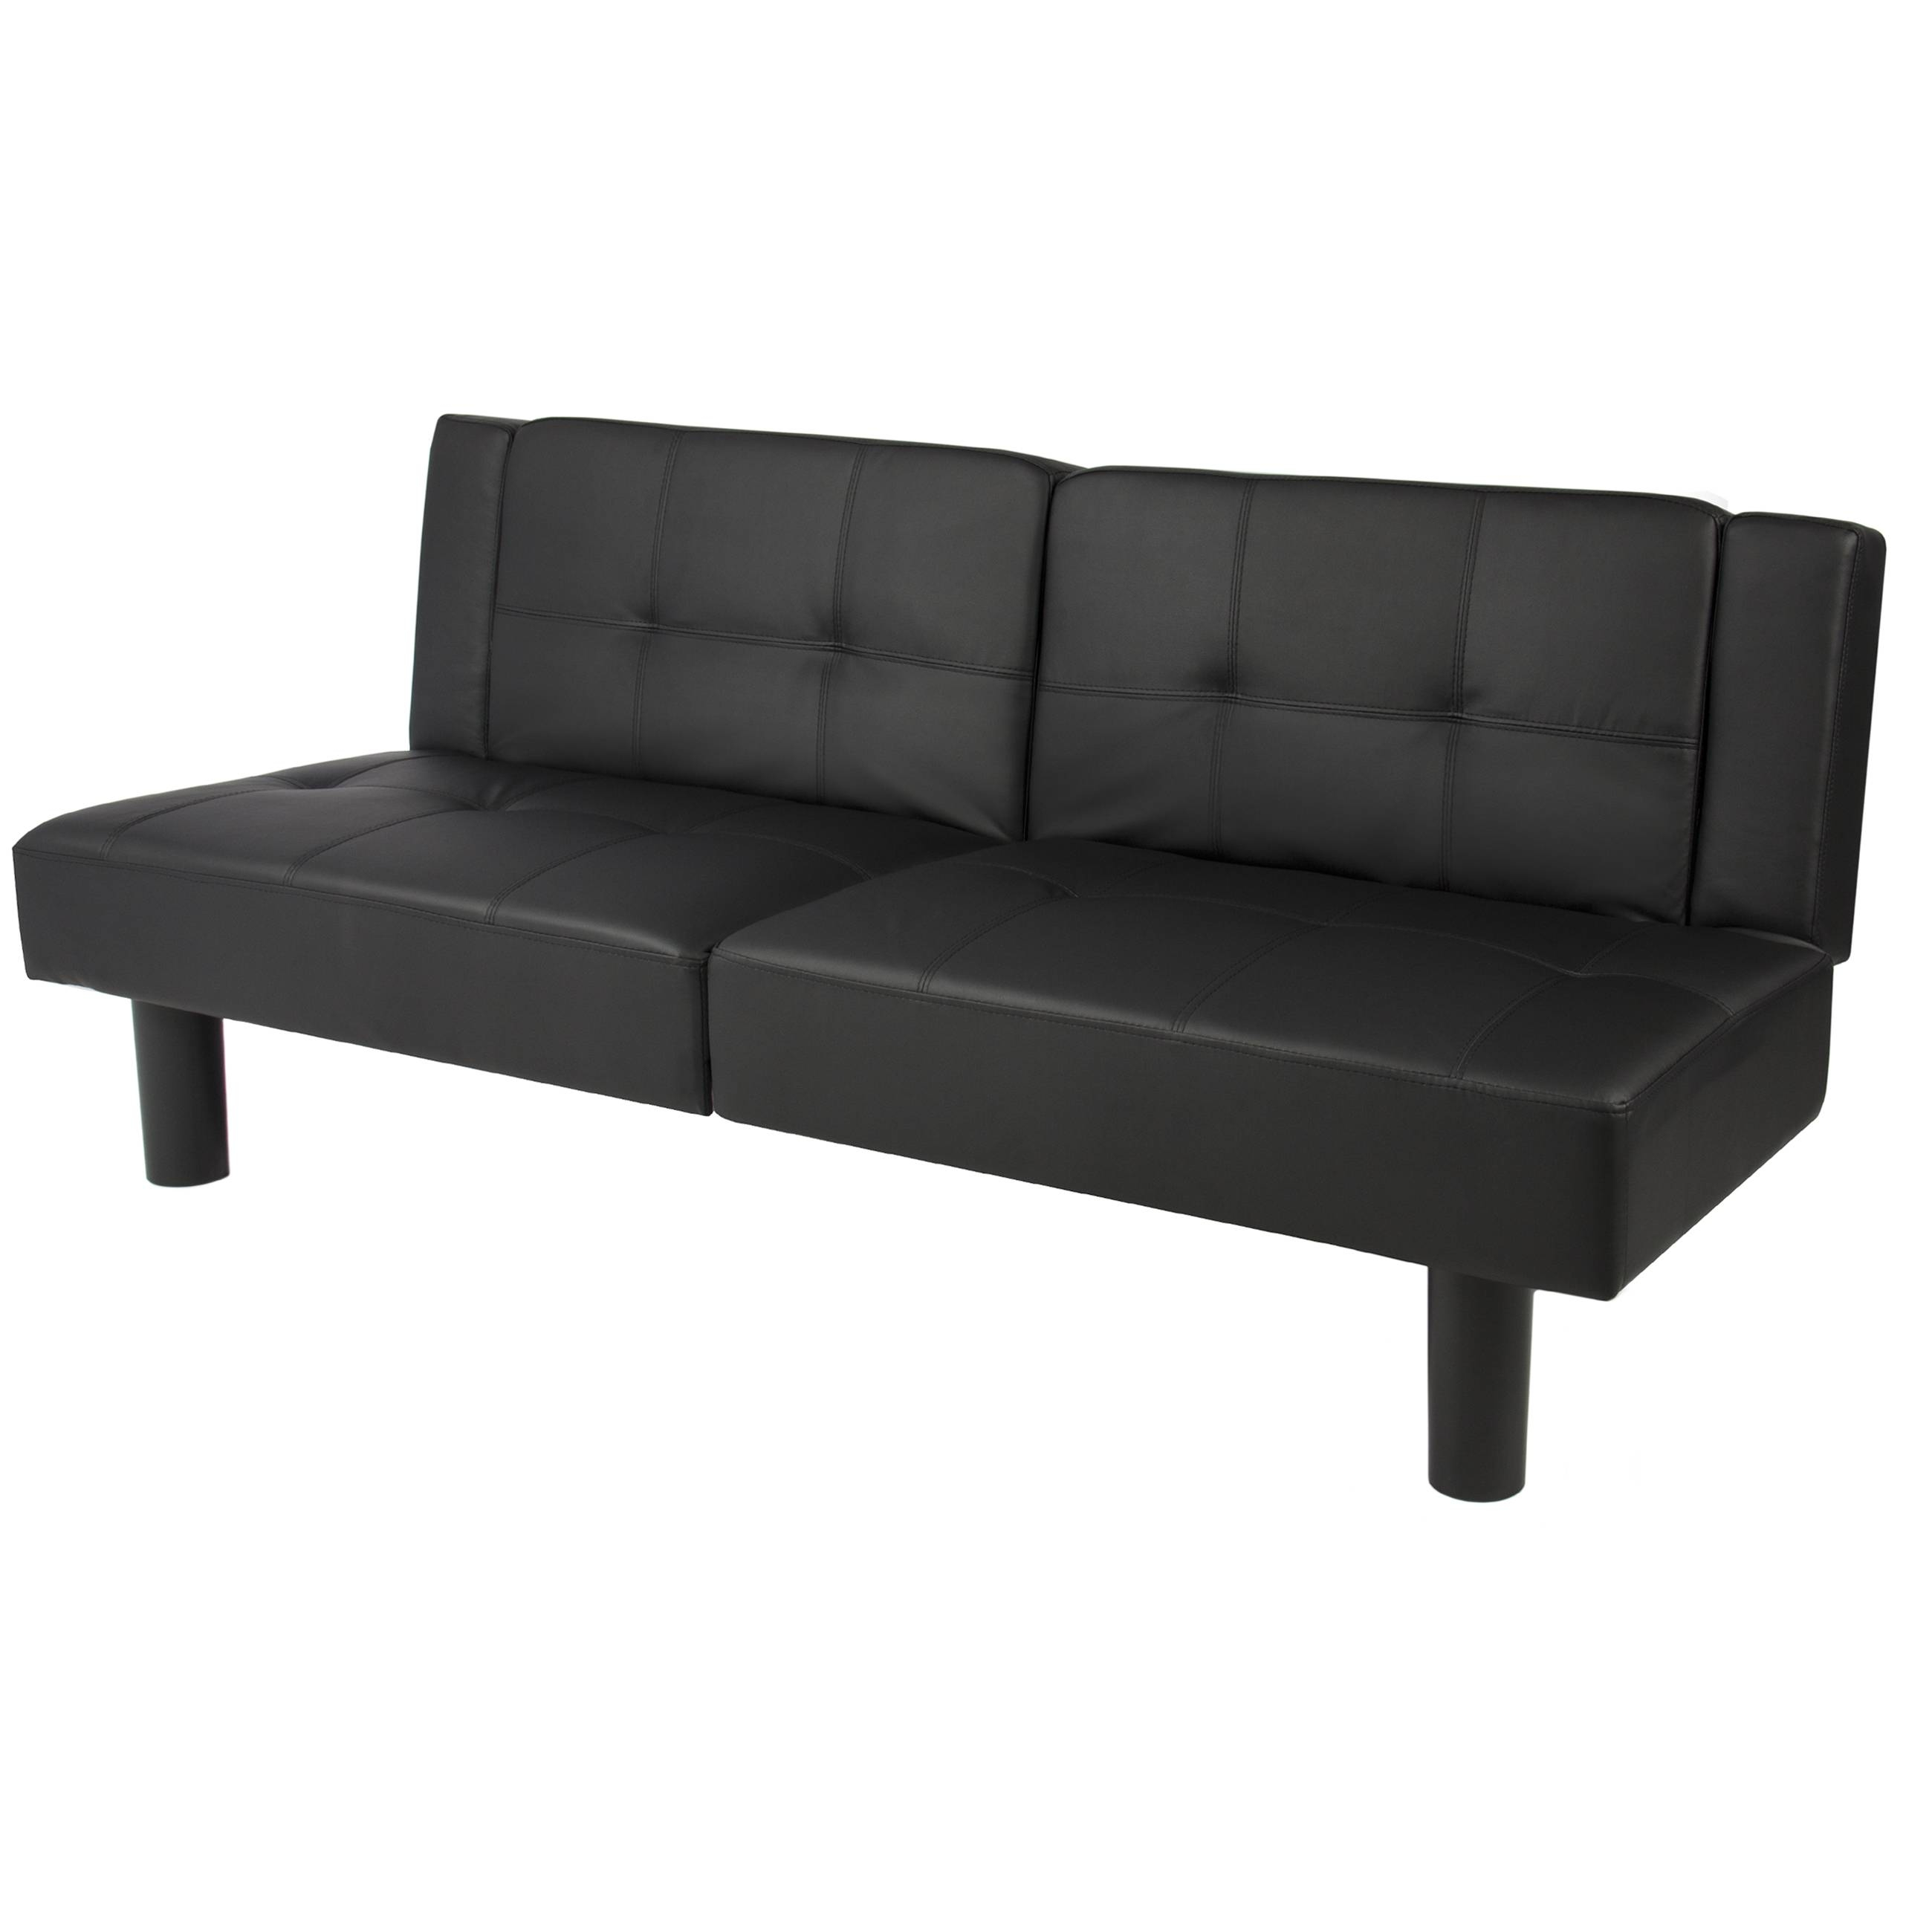 Leather Faux Fold Down Futon Sofa Bed Couch Sleeper Furniture regarding Convertible Futon Sofa Beds (Image 12 of 15)